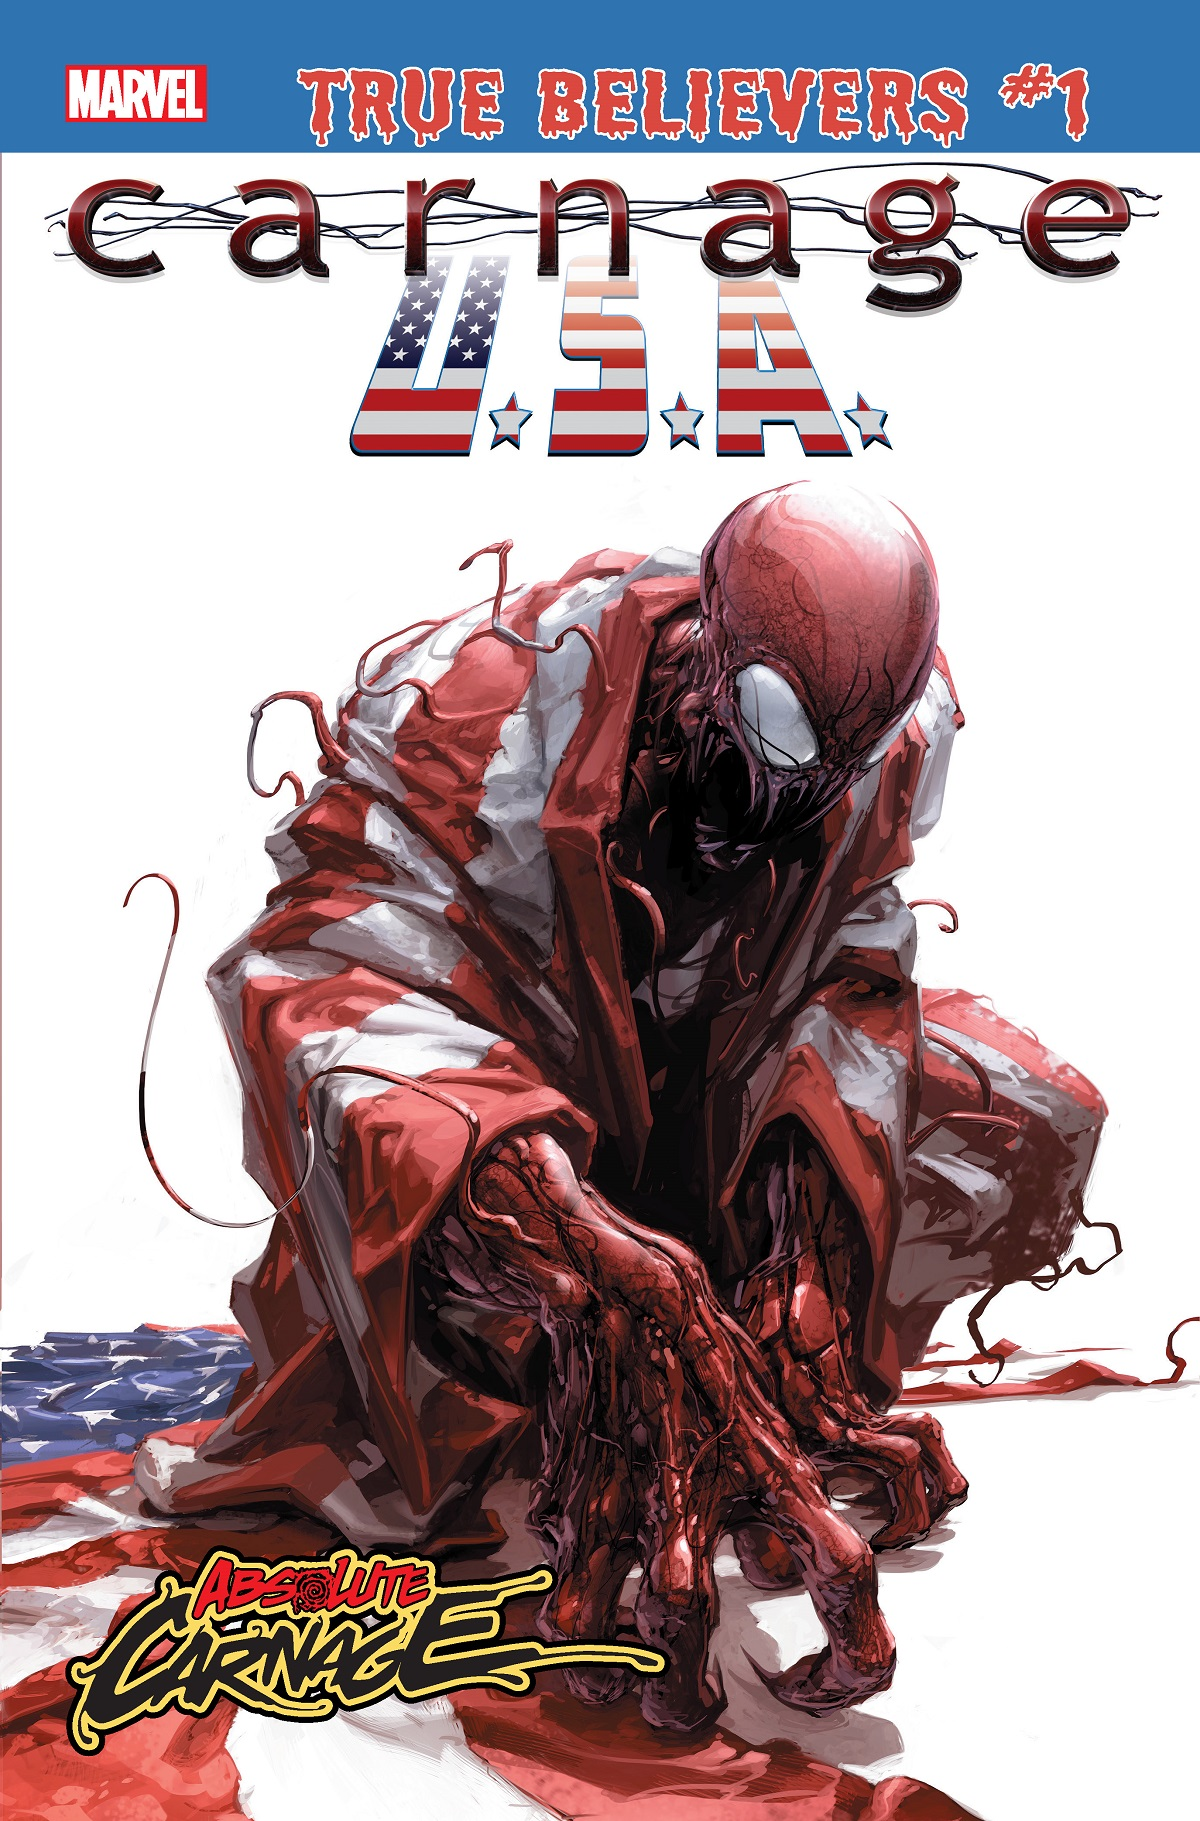 True Believers: Absolute Carnage - Carnage, U.S.A. Vol 1